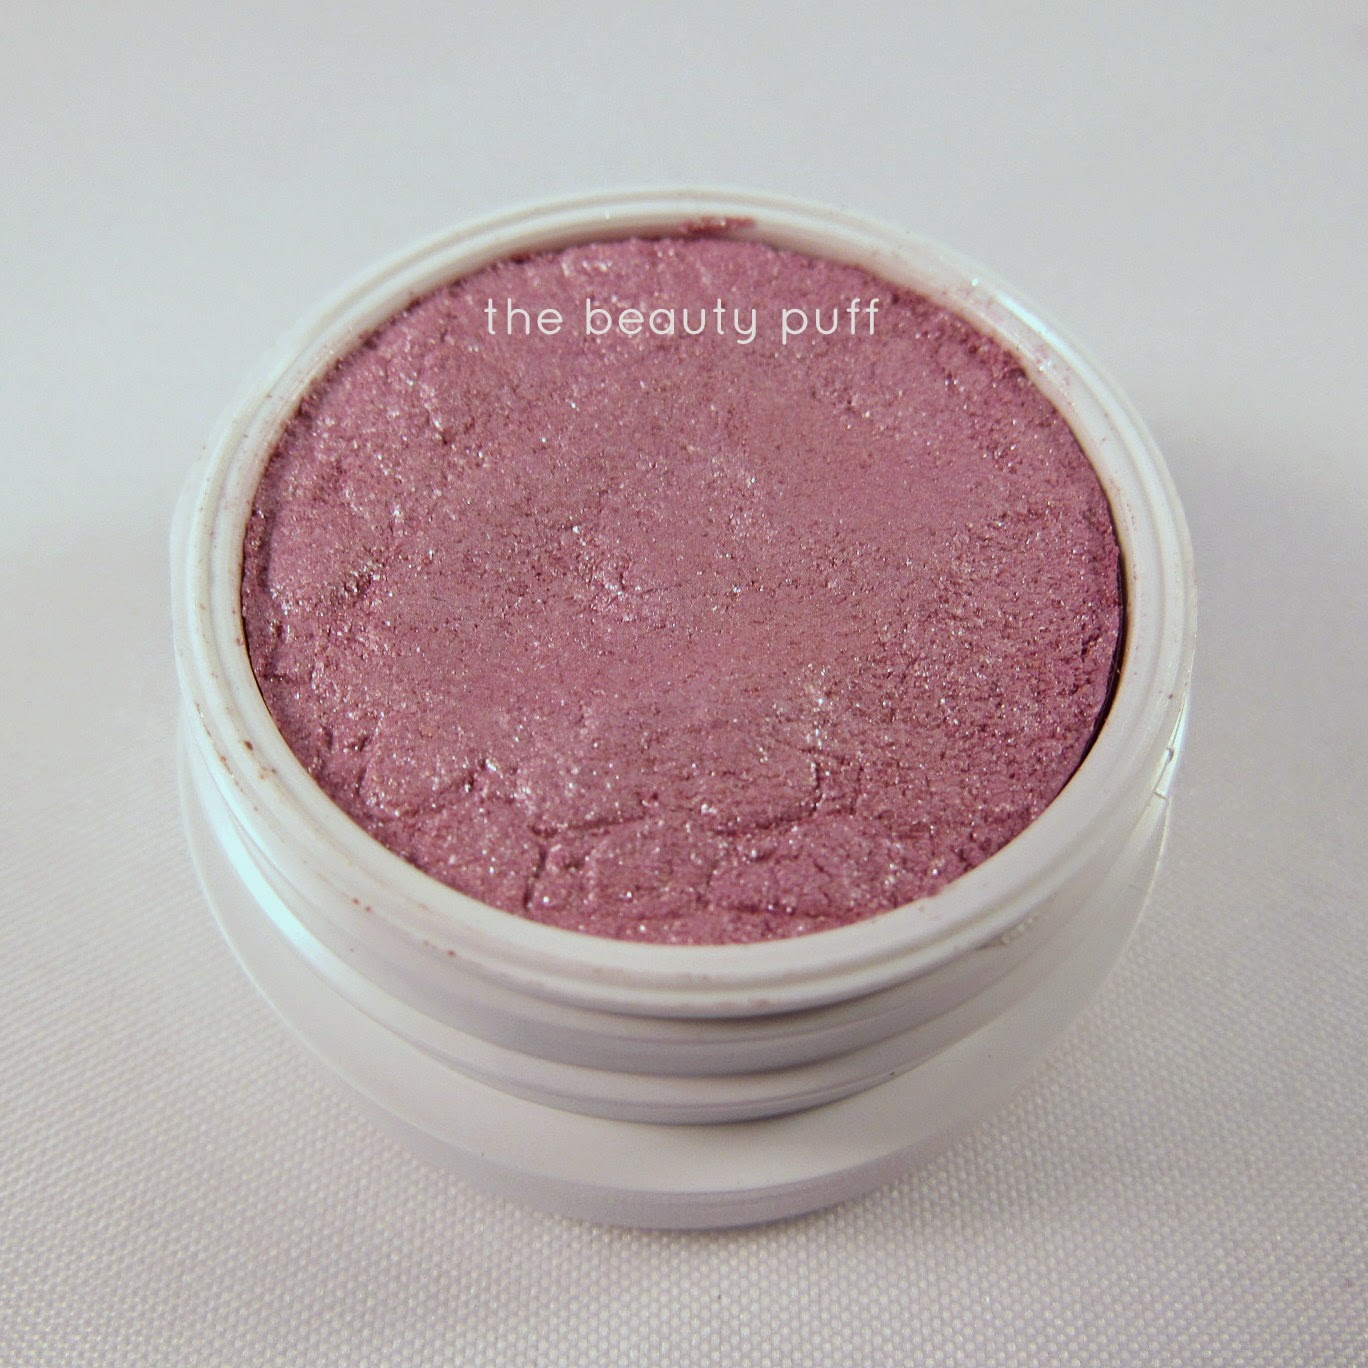 colour pop eye candy - the beauty puff